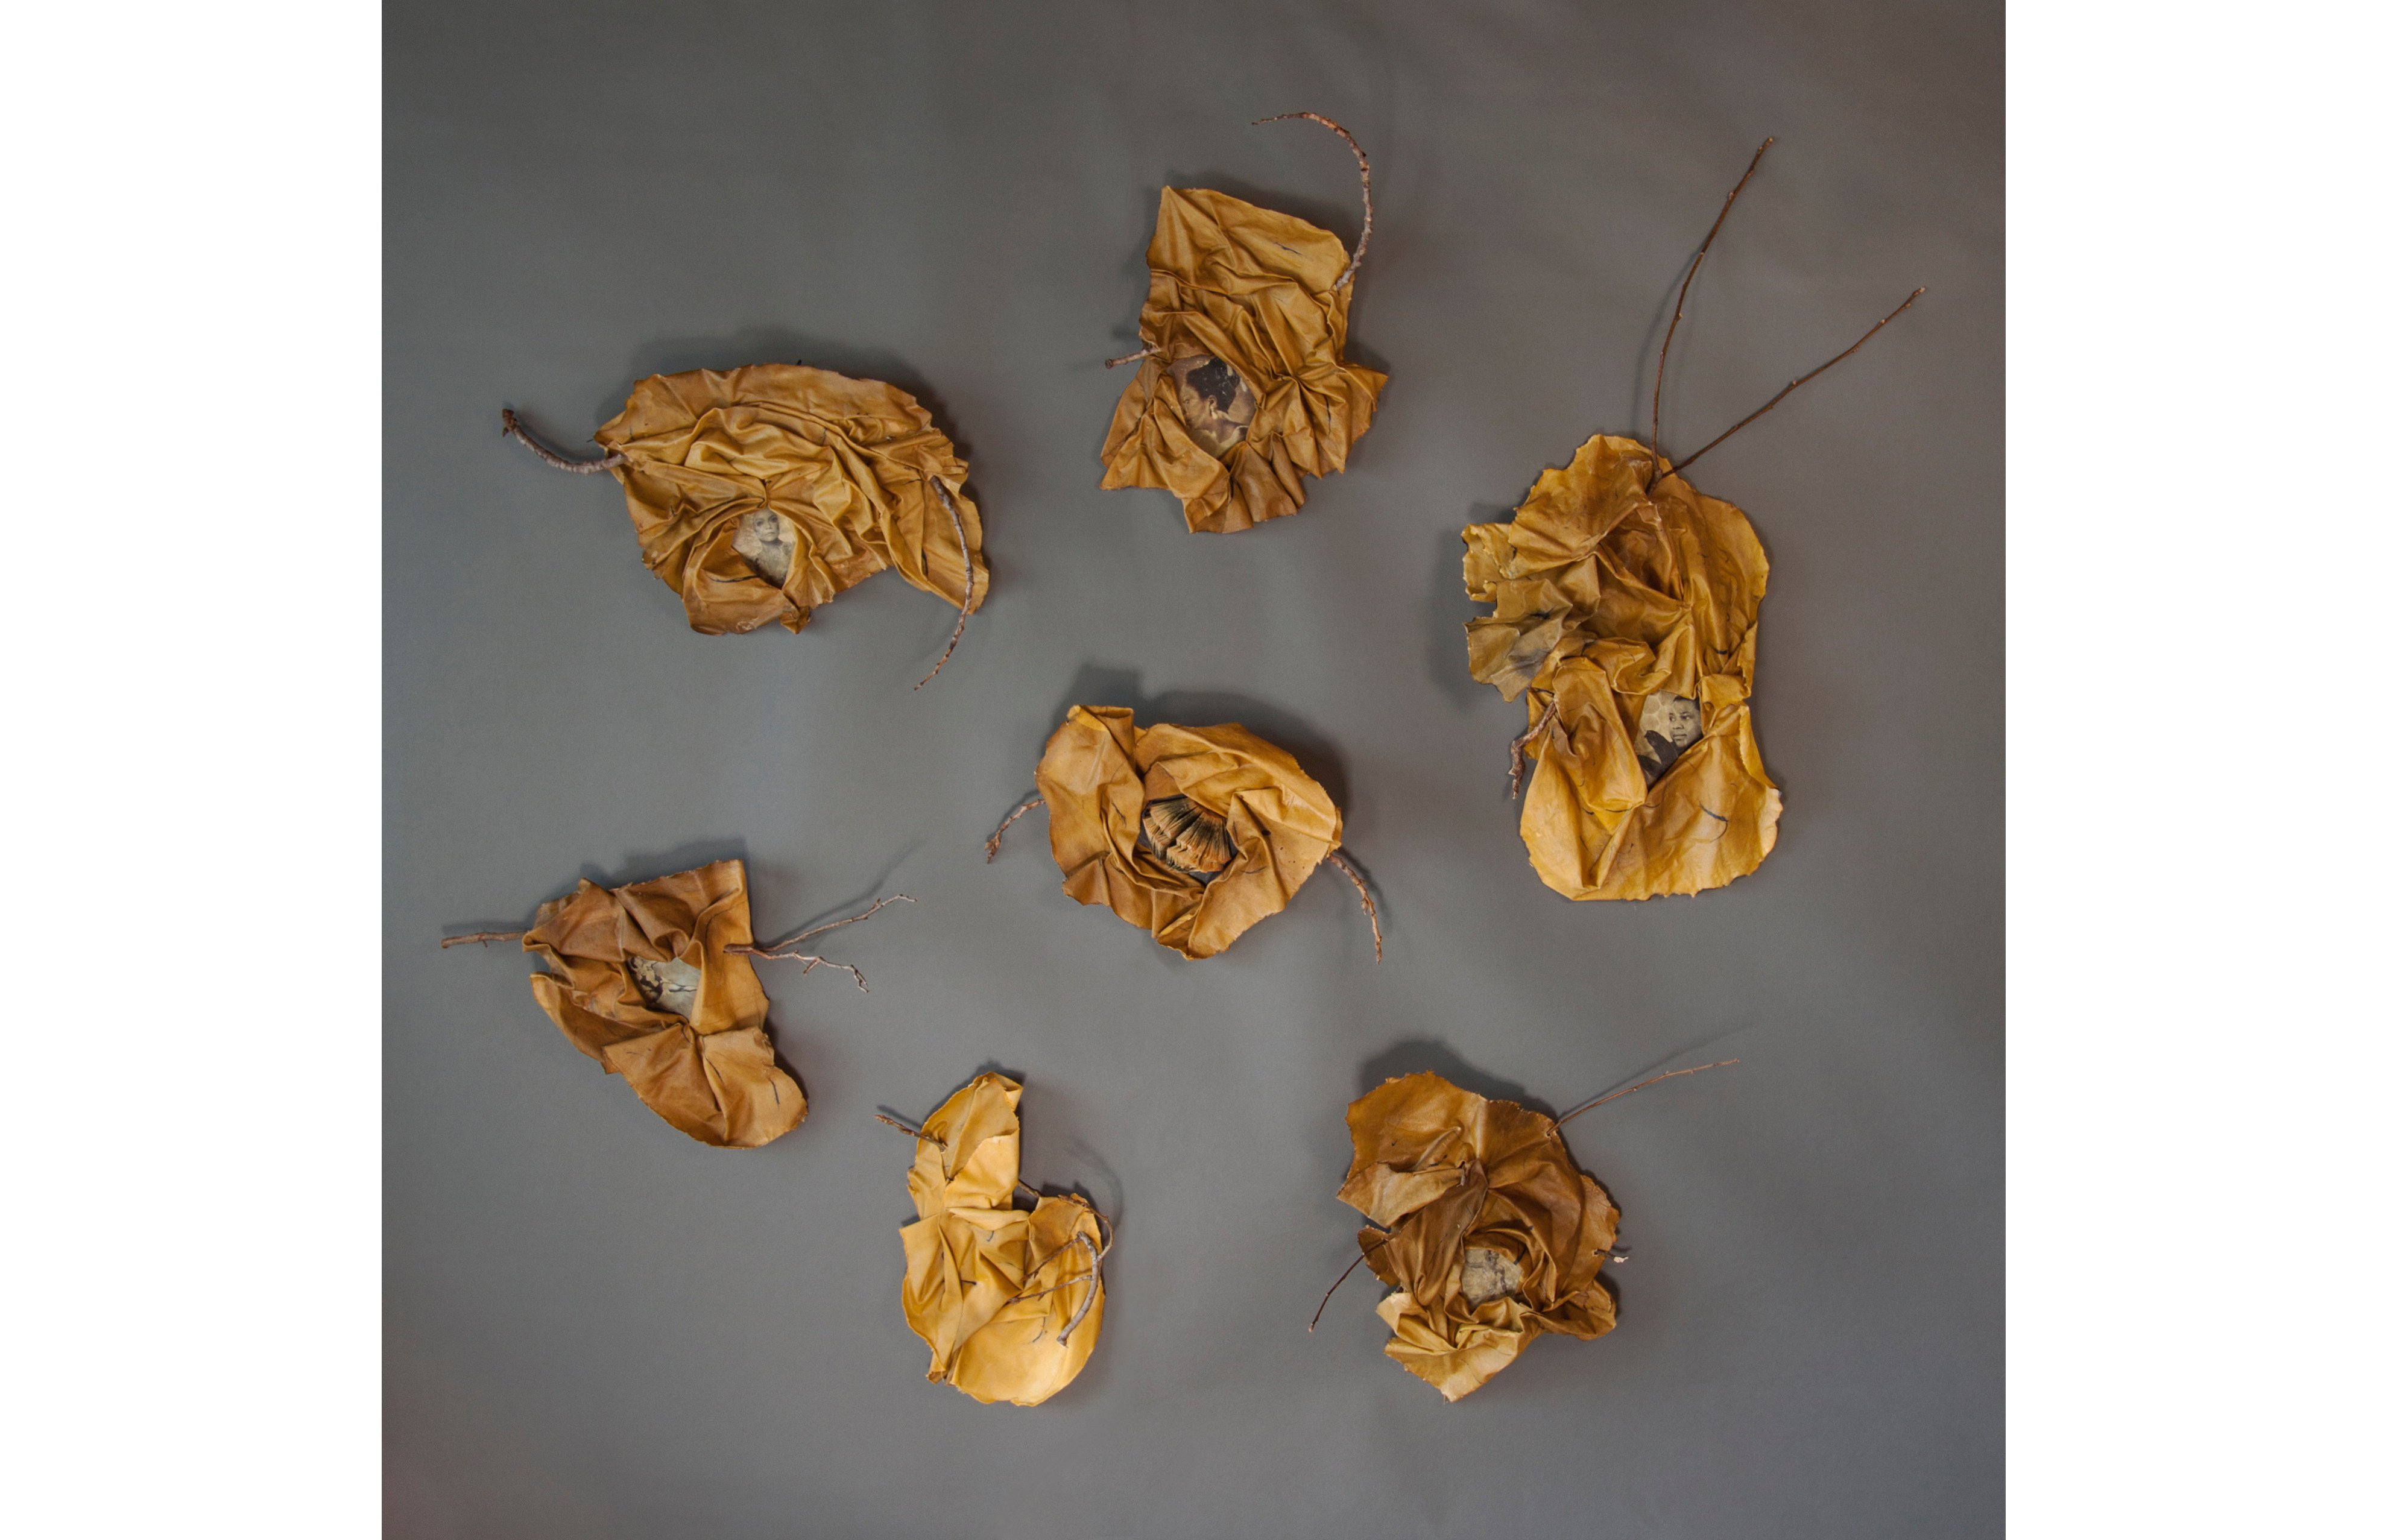 """""""Wild Hives / Black Queens"""" by Kaylynn Sullivan TwoTrees, 12' x 12' sculptural installation of painted muslin and photographs dipped in beeswax with Poplar branches, Mud Season Review"""